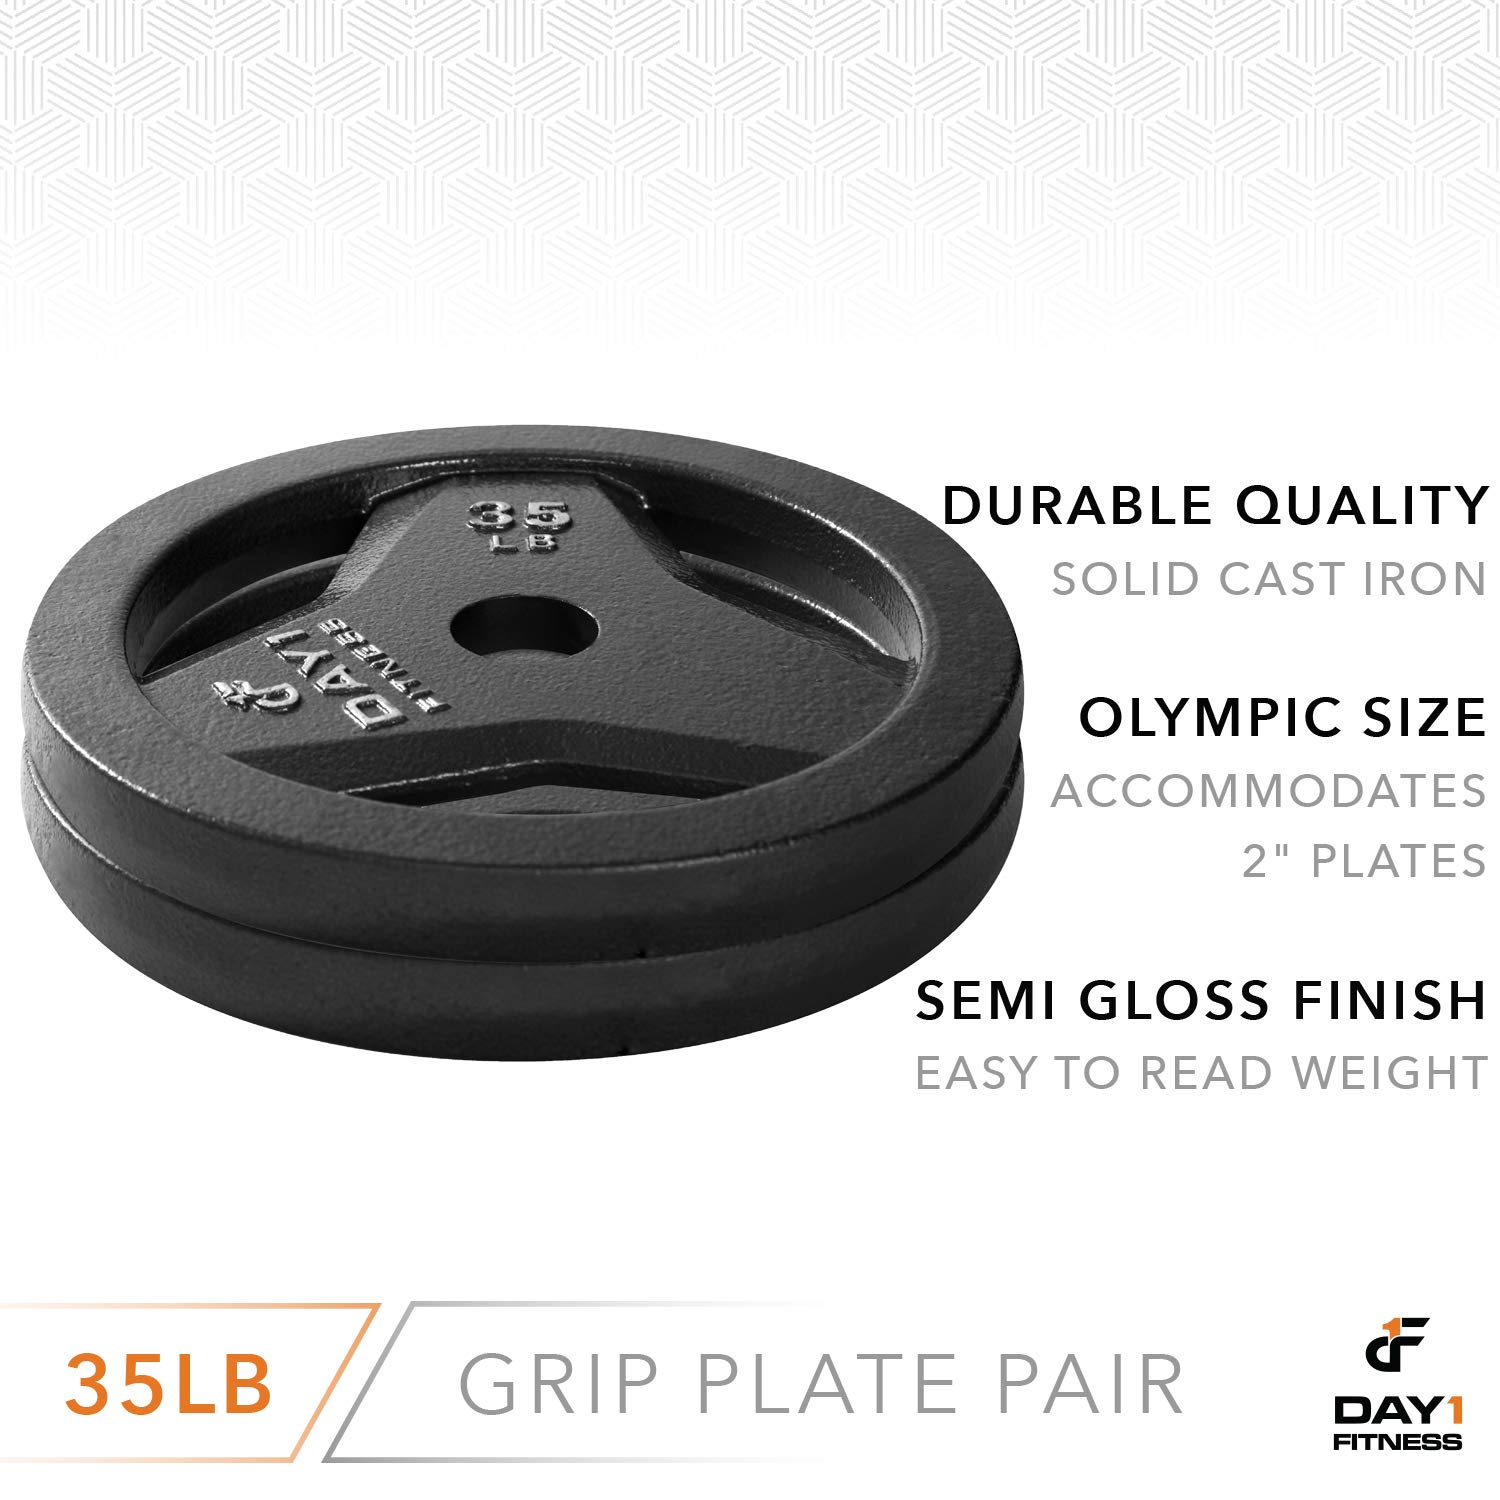 """Day 1 Fitness Cast Iron Olympic 2-Inch Grip Plate for Barbell, 35 Pound Set of 2 Plates Iron Grip Plates for Weightlifting, Crossfit - 2"""" Weight Plate for Bodybuilding by Day 1 Fitness (Image #3)"""